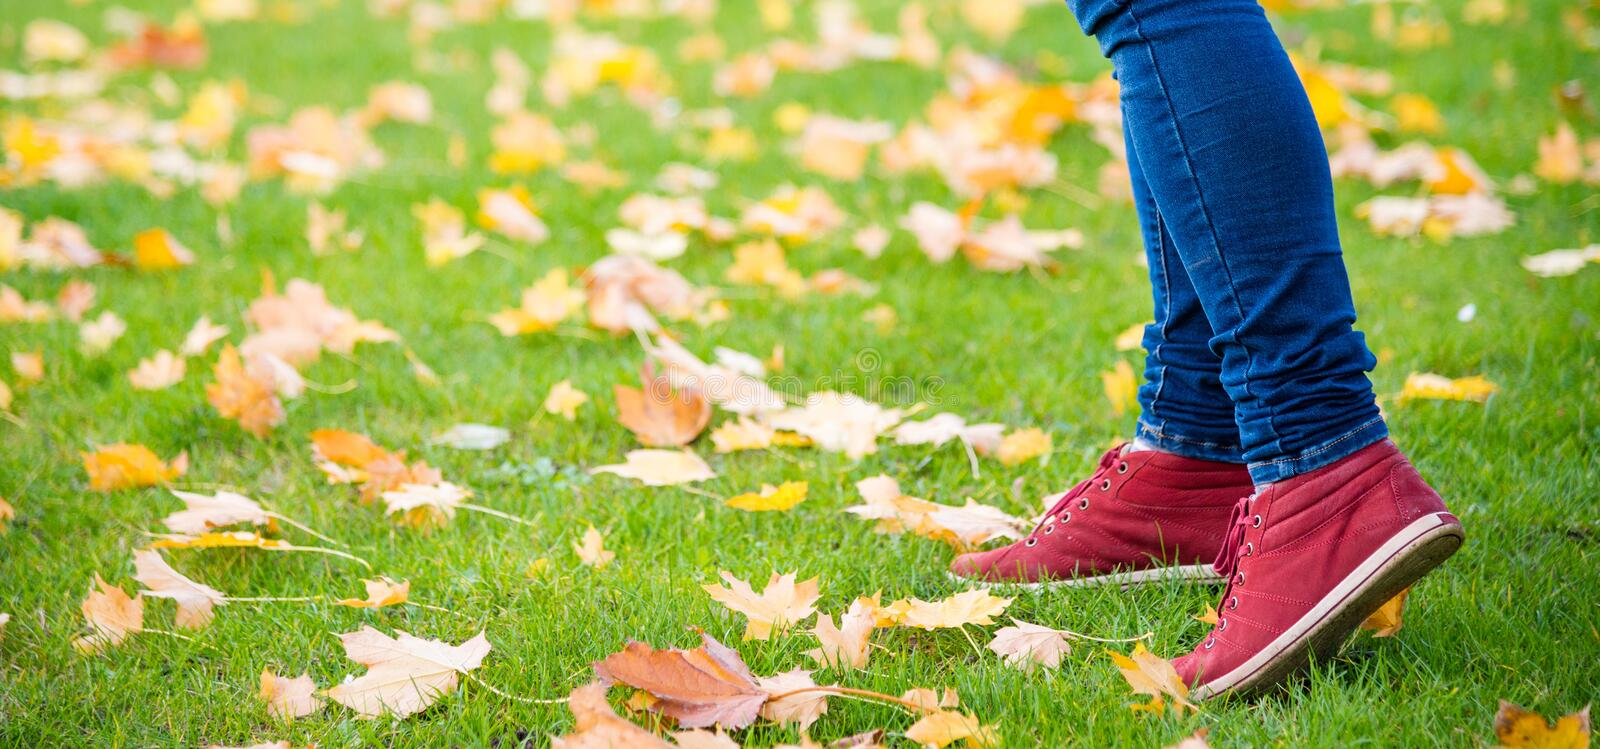 Feet sneakers walking on fall leaves. Autumn royalty free stock images